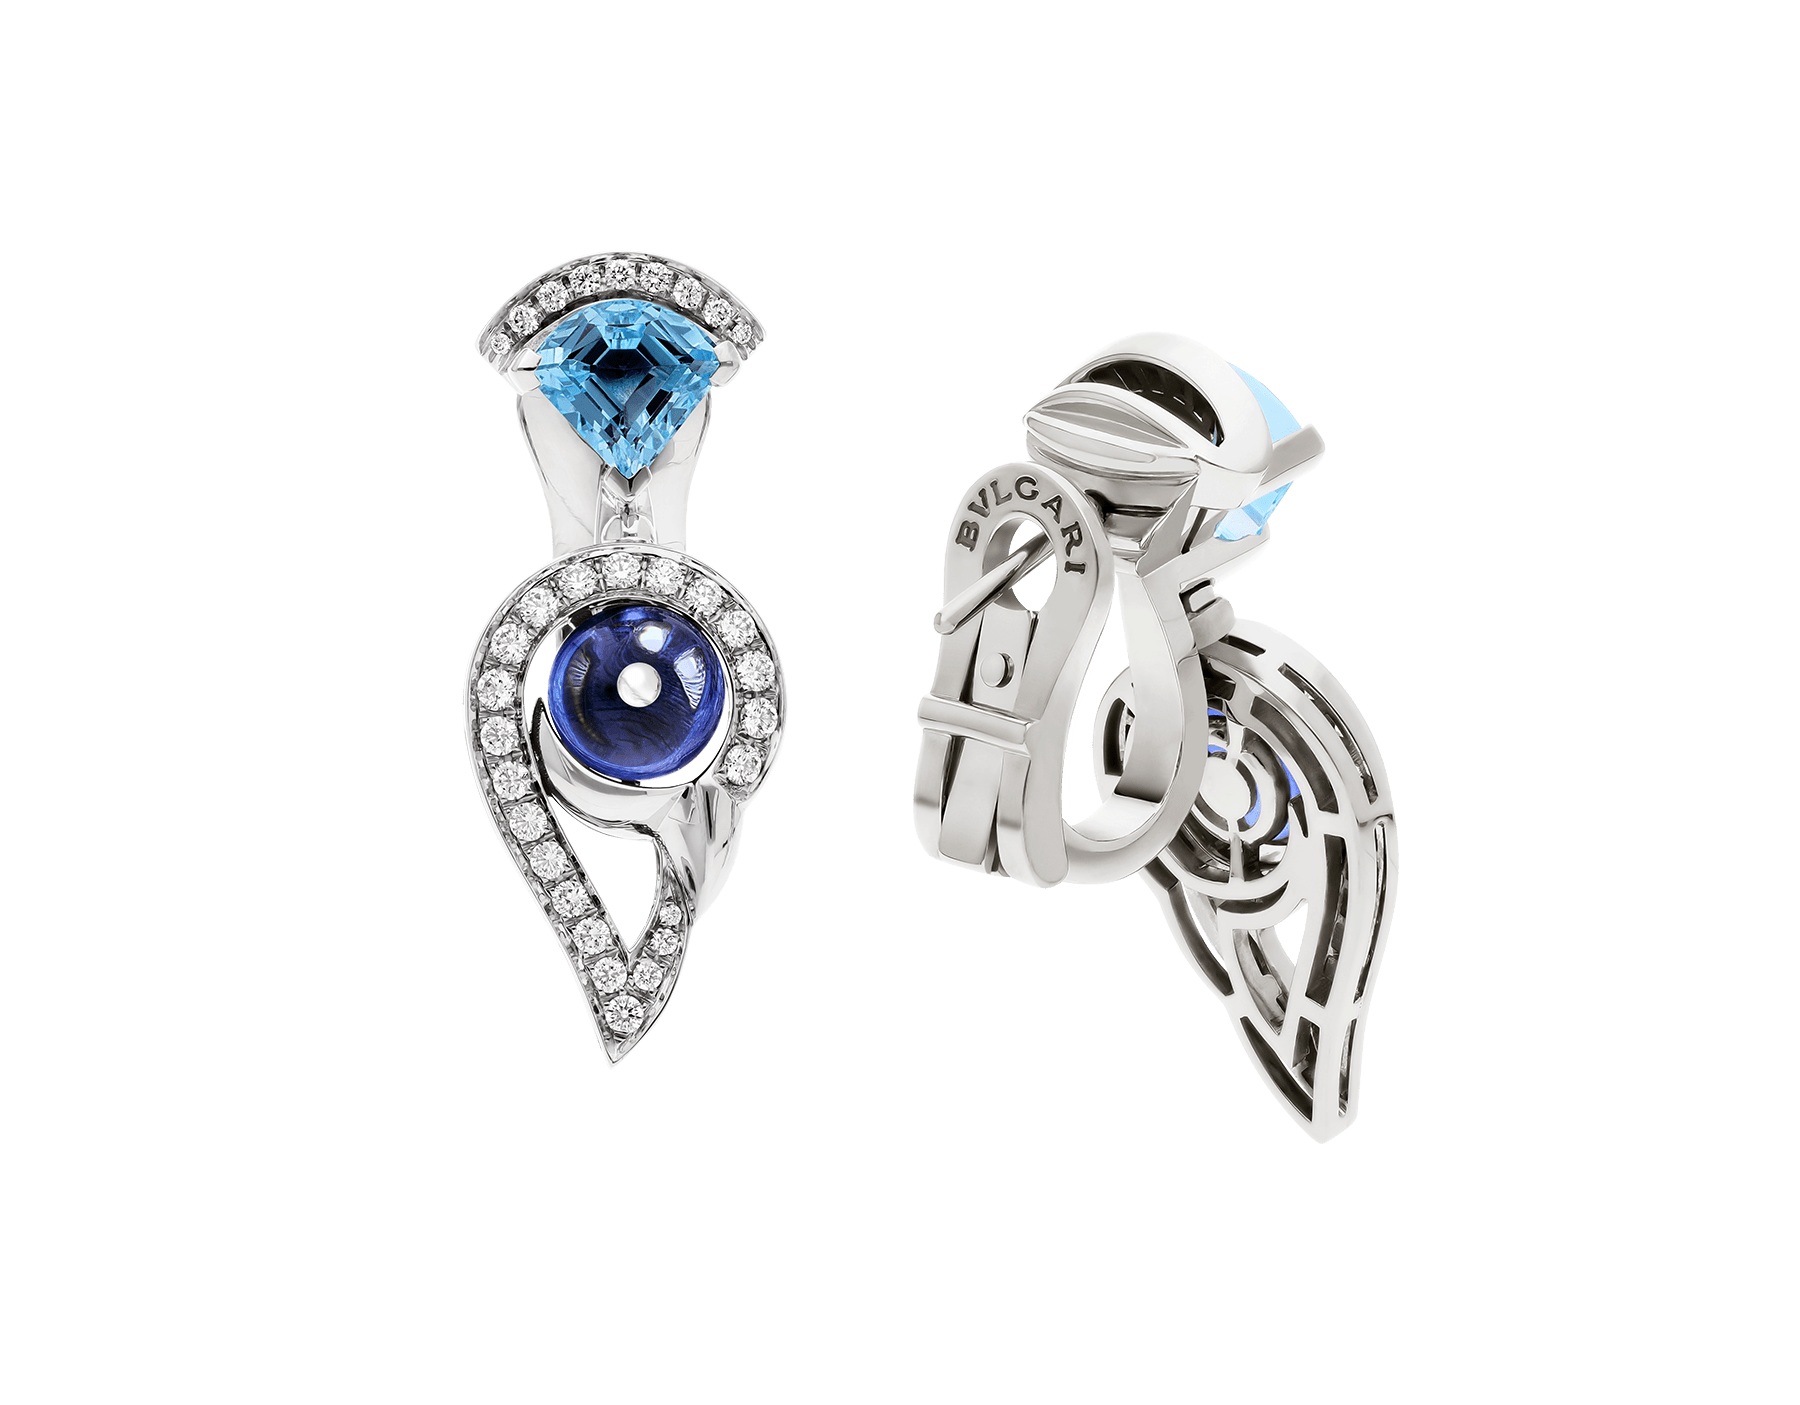 DIVAS' DREAM 18 kt white gold earrings set with coloured gemstones and pavé diamonds 355628 image 3